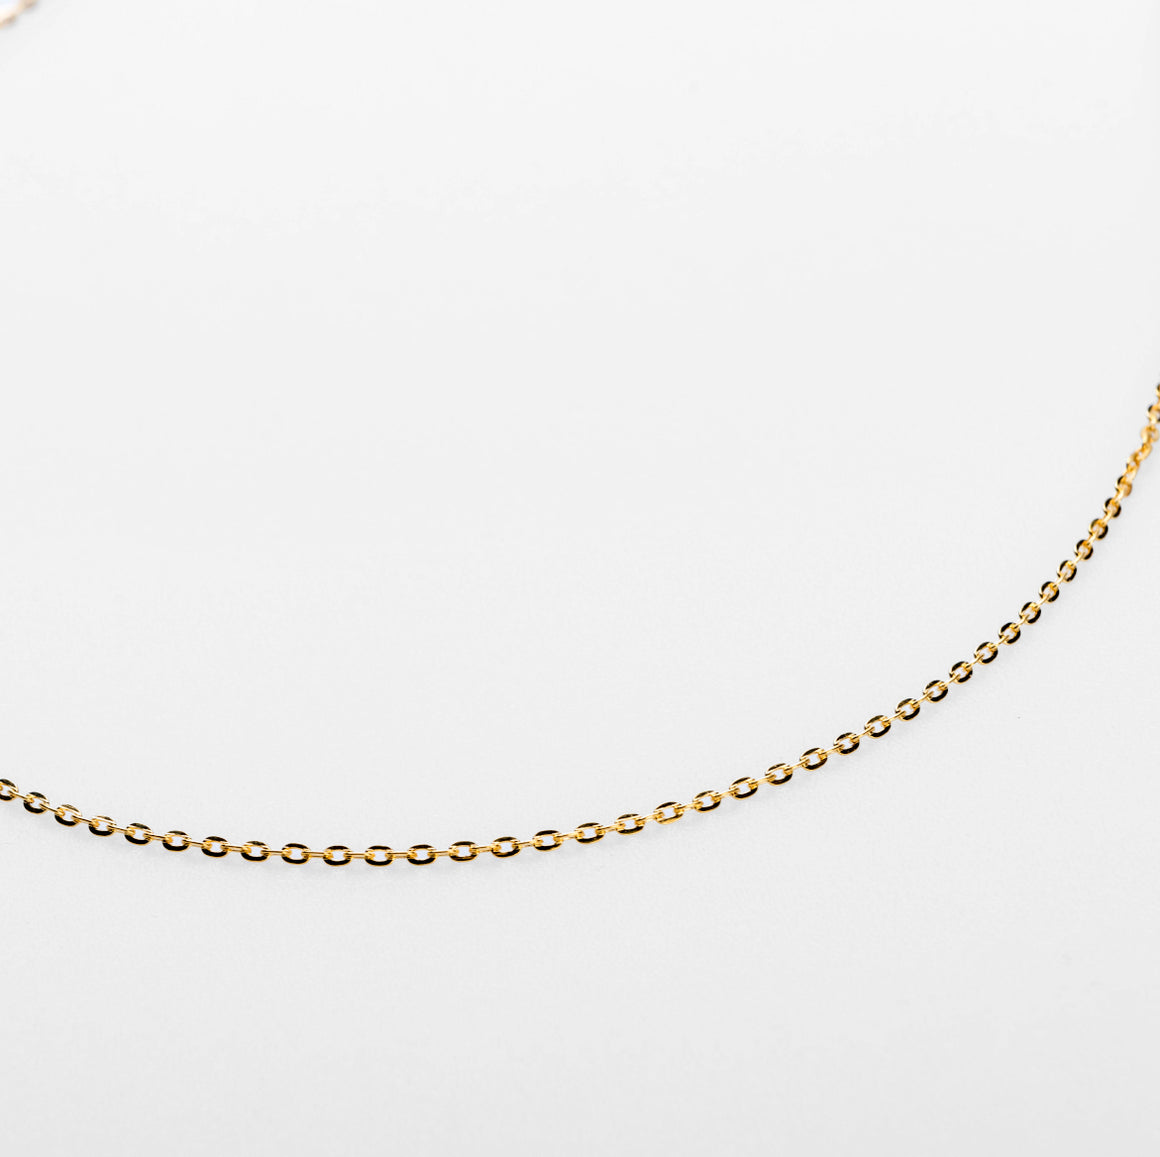 2mm CURB NECKLACE CHAIN - GOLD